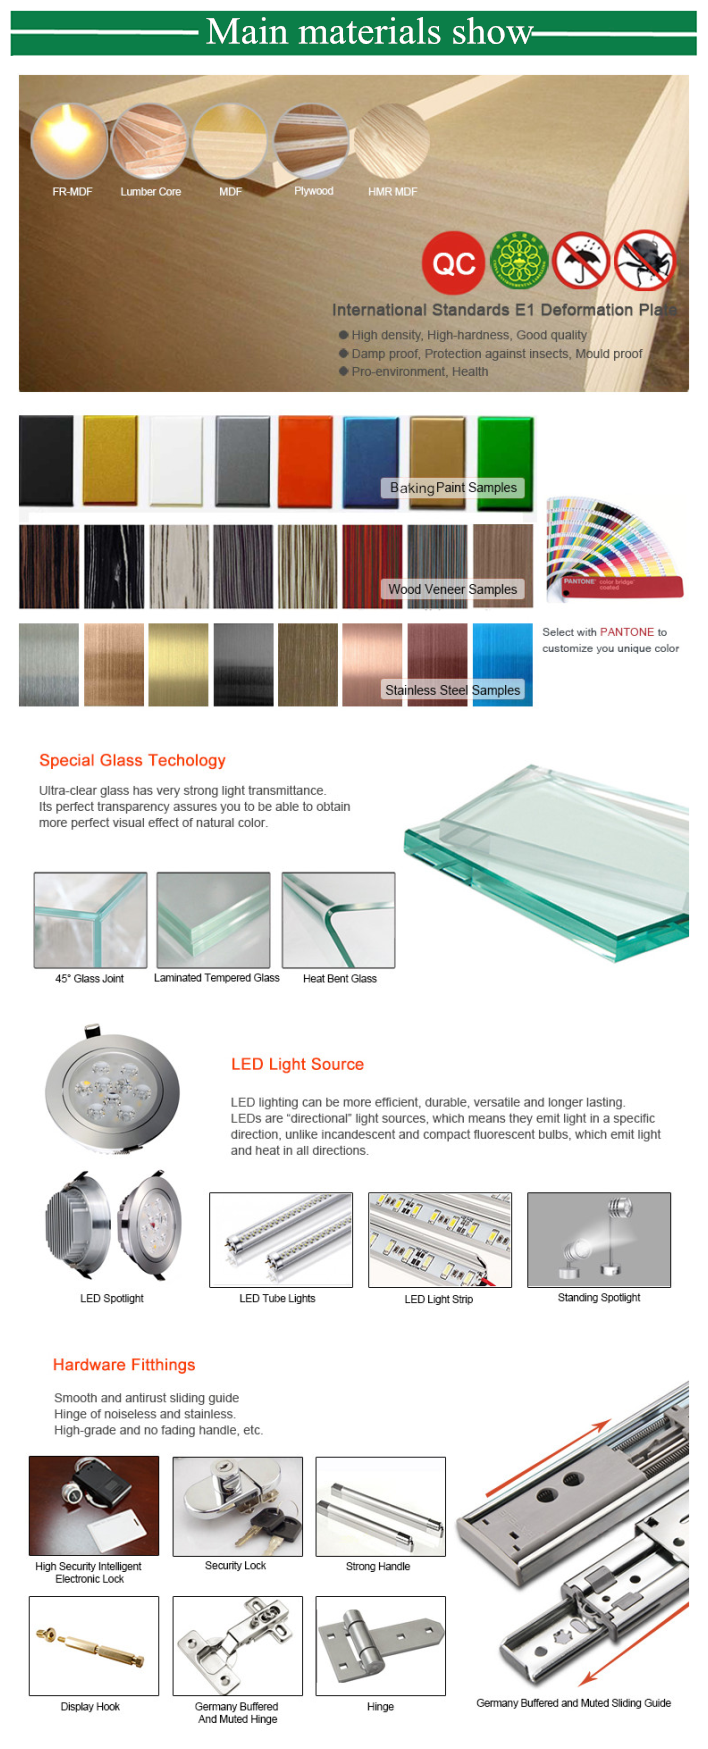 Wall tall tempered glass museum display equipment with LED spotlight and  museum equipment showcase